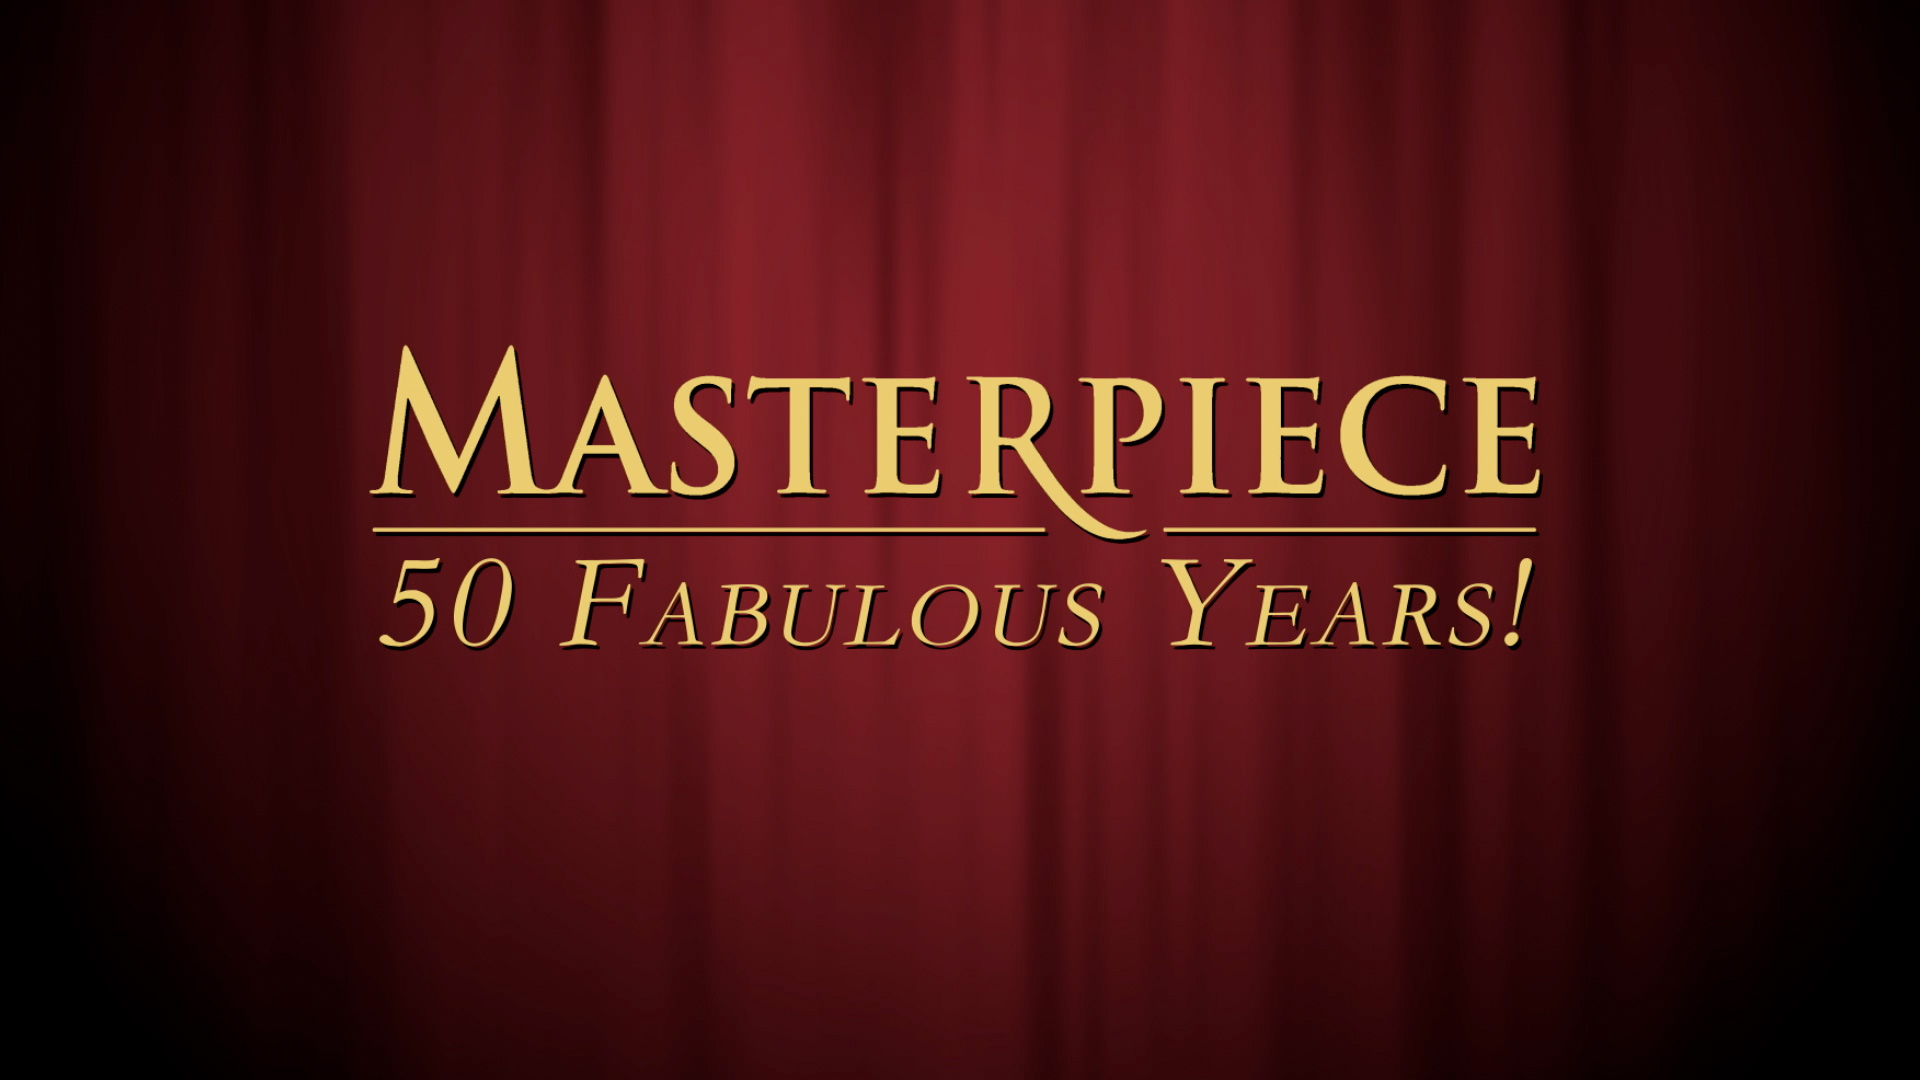 Celebrating 50 Fabulous Years of Masterpiece